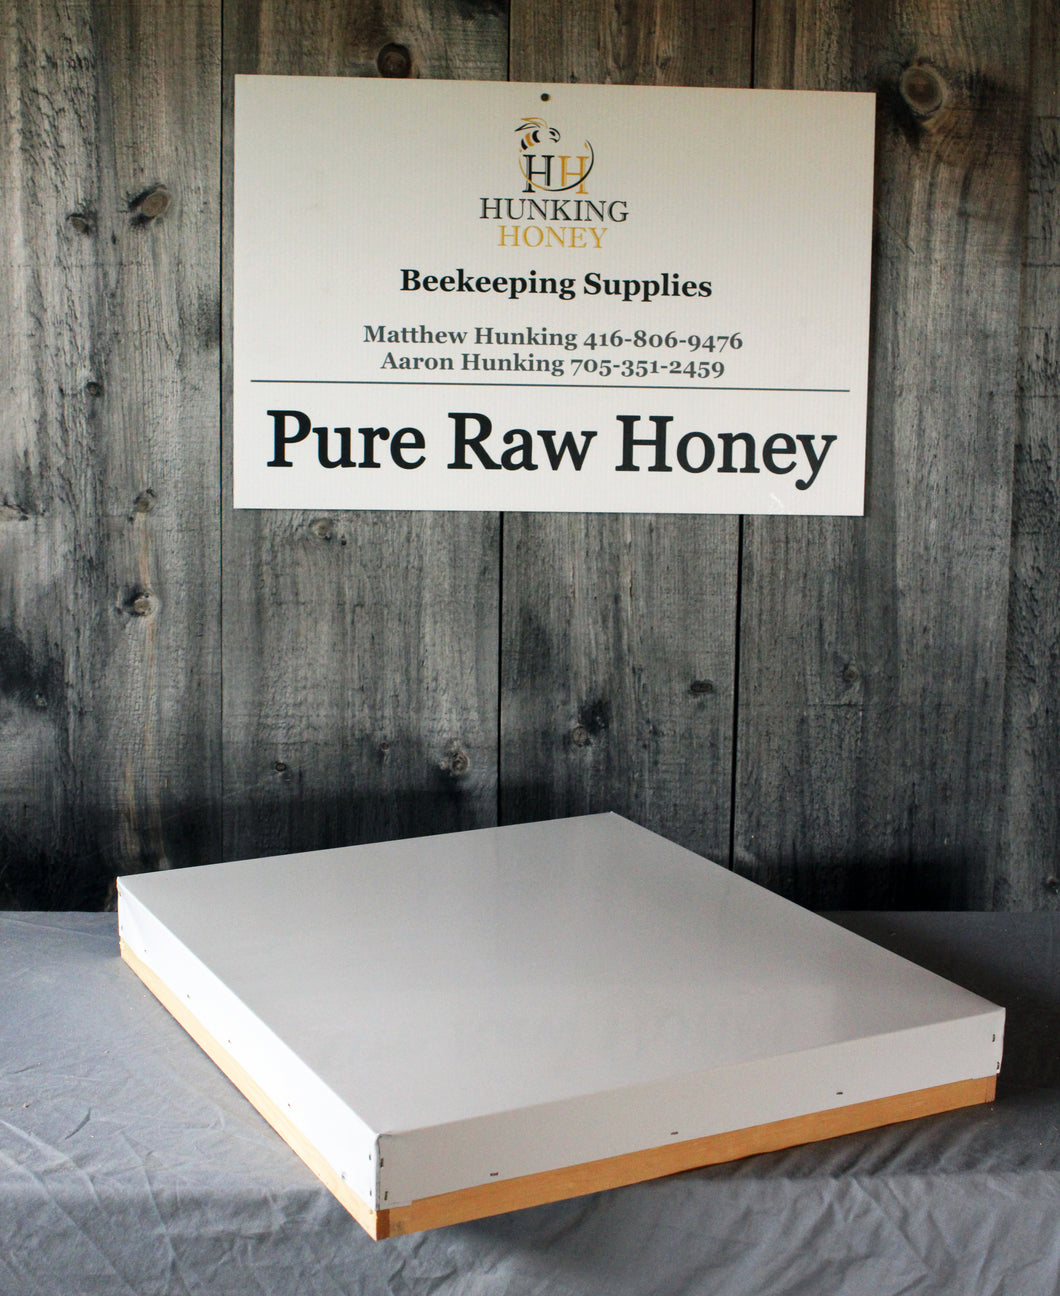 Standard Top Cover - Hunking Honey